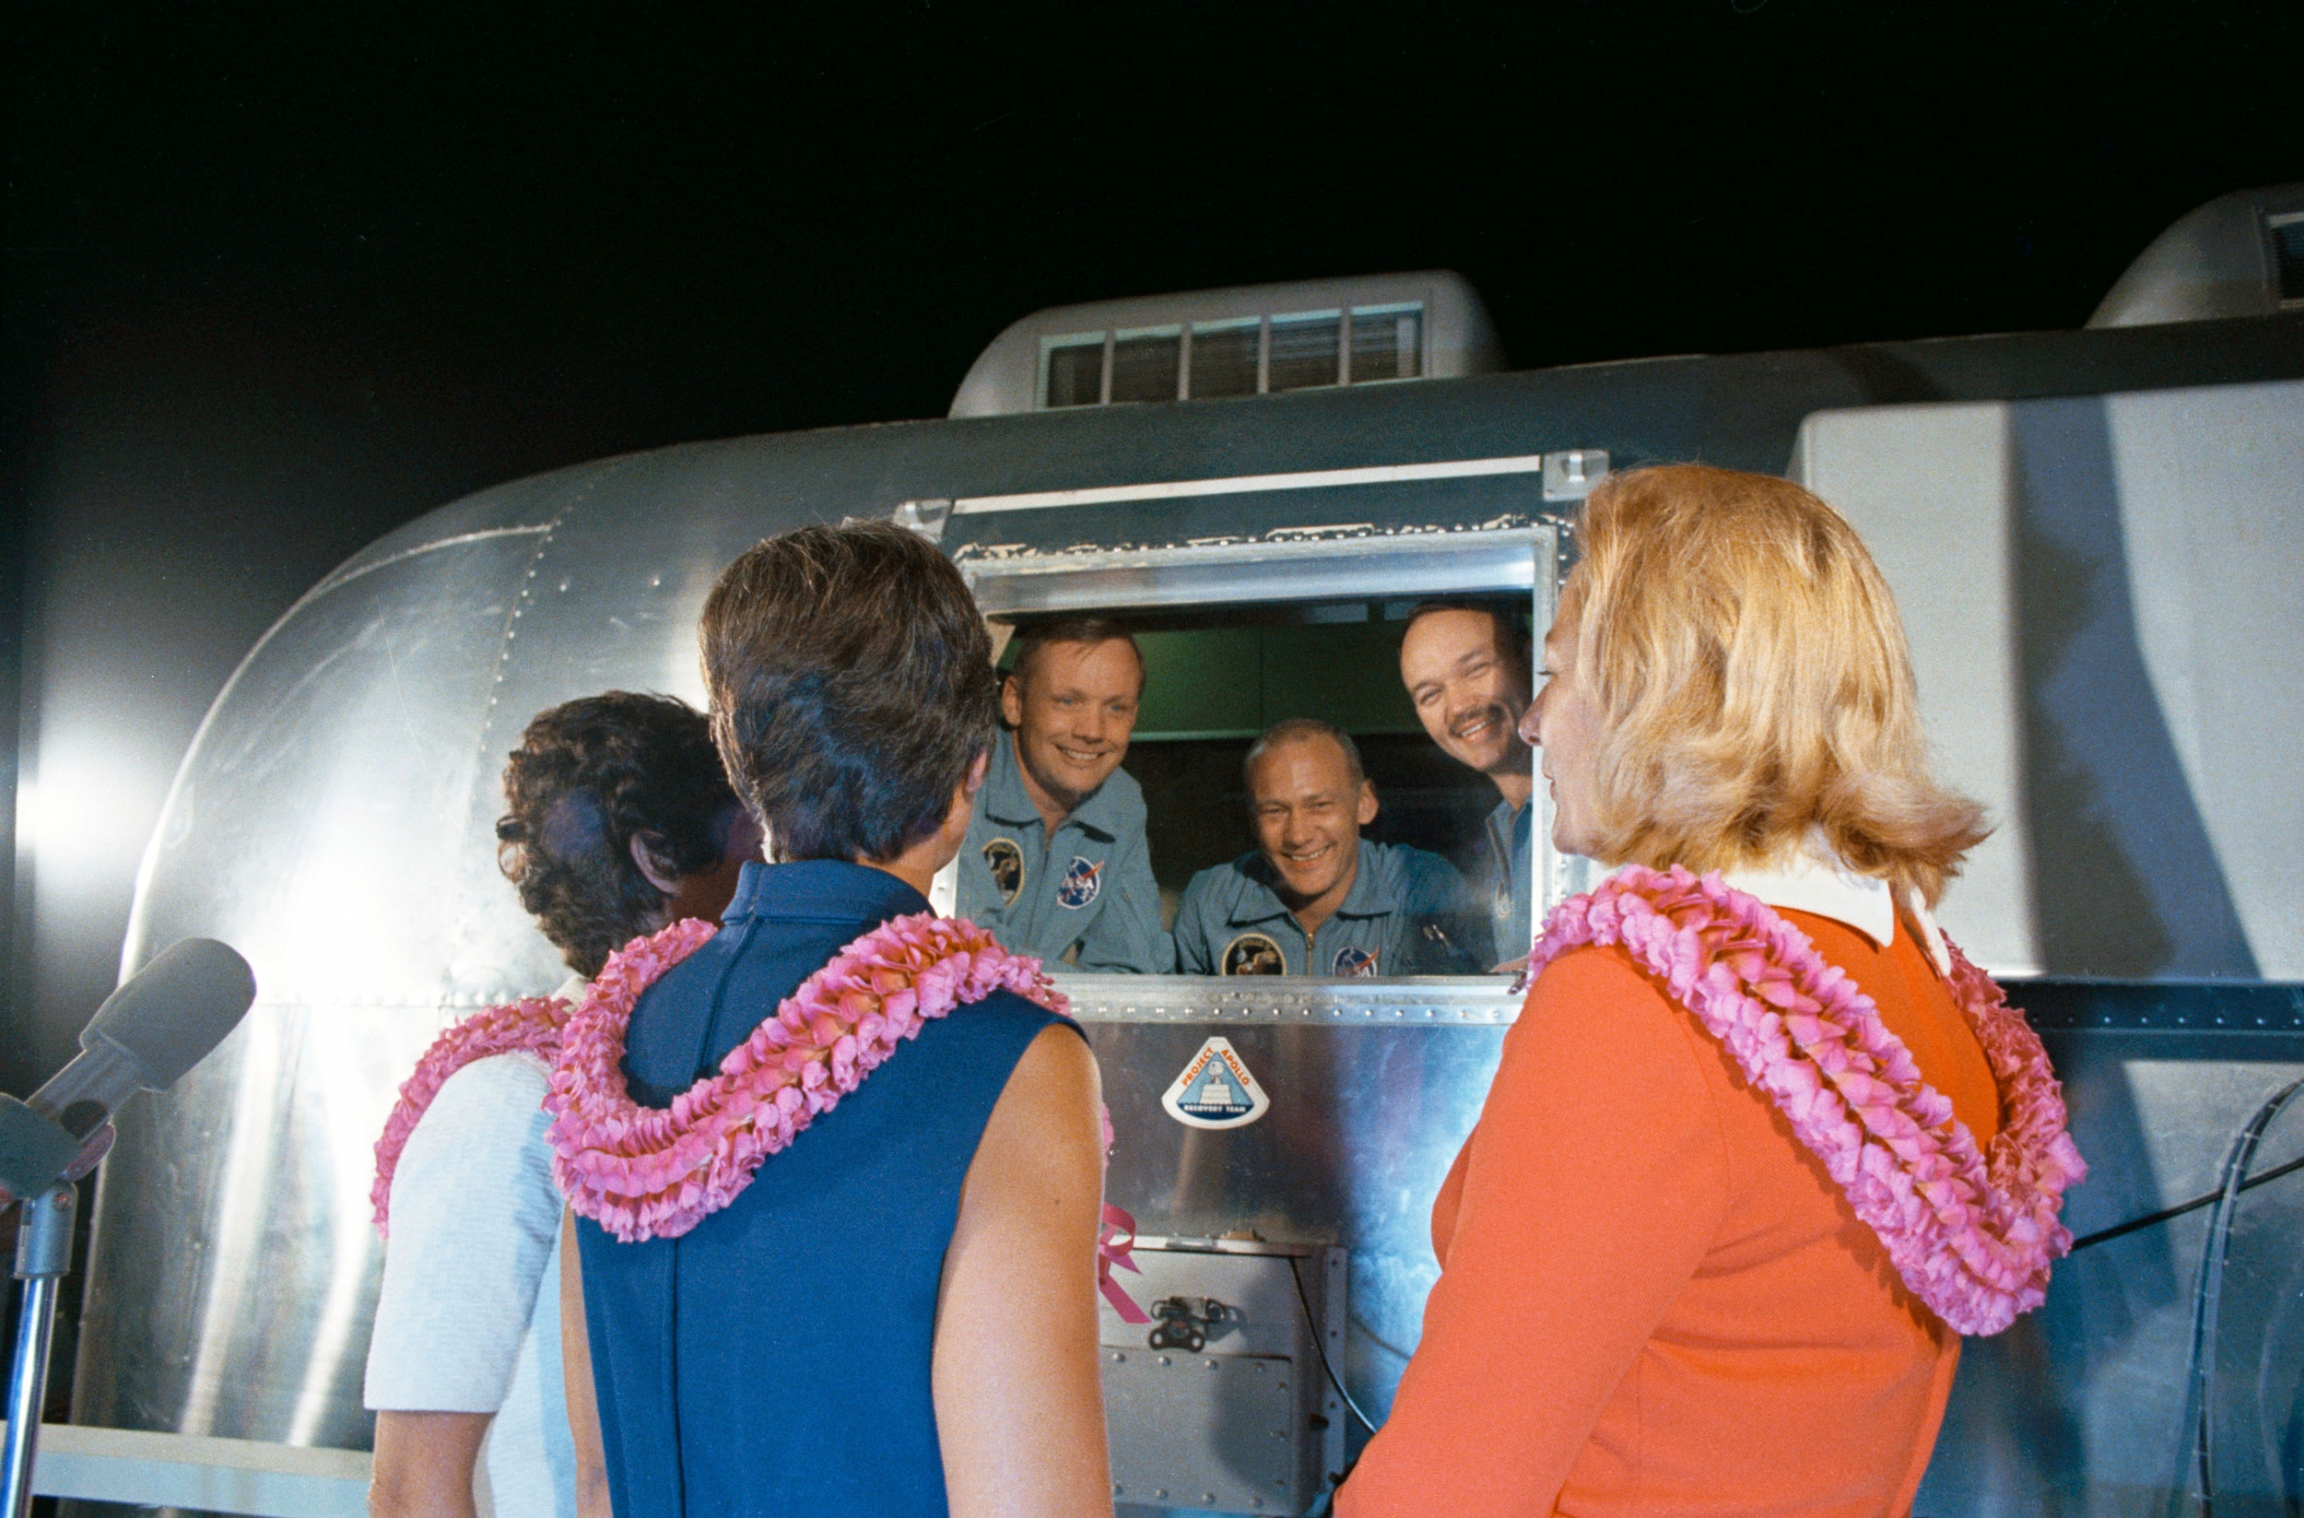 A silver-colored containment structure is shown Neil A. Armstrong, Edwin E. Aldrin Jr., and Michael Collins speaking with their wives.